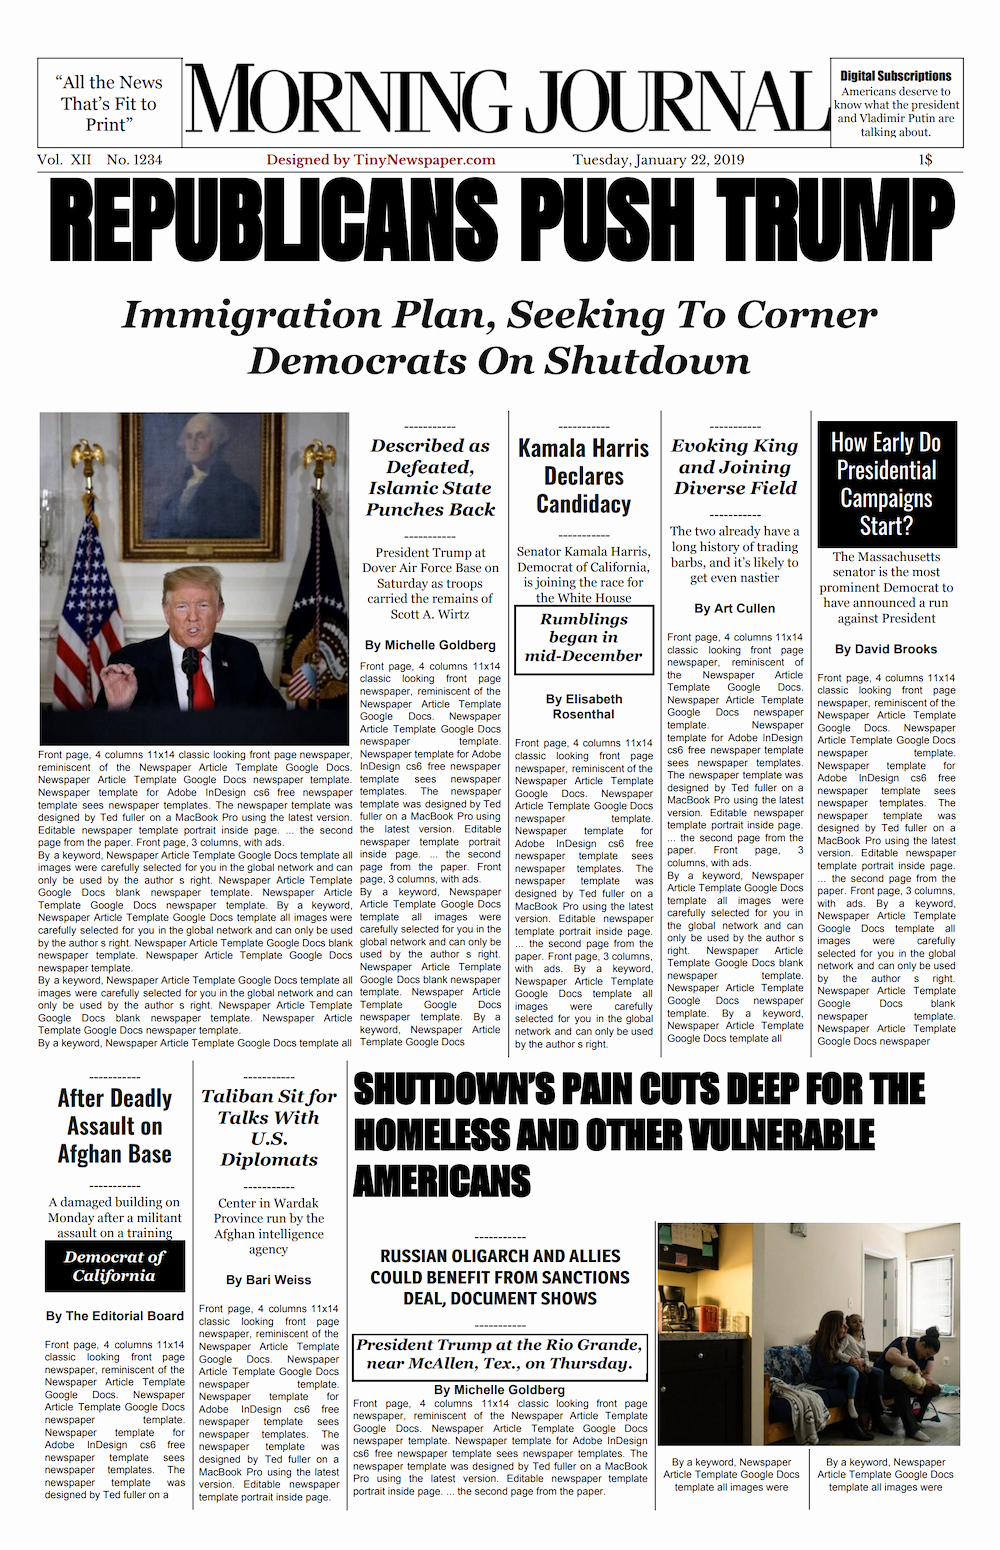 New York Times Newspaper Template Google Docs Best Of New York Times Front Page Template